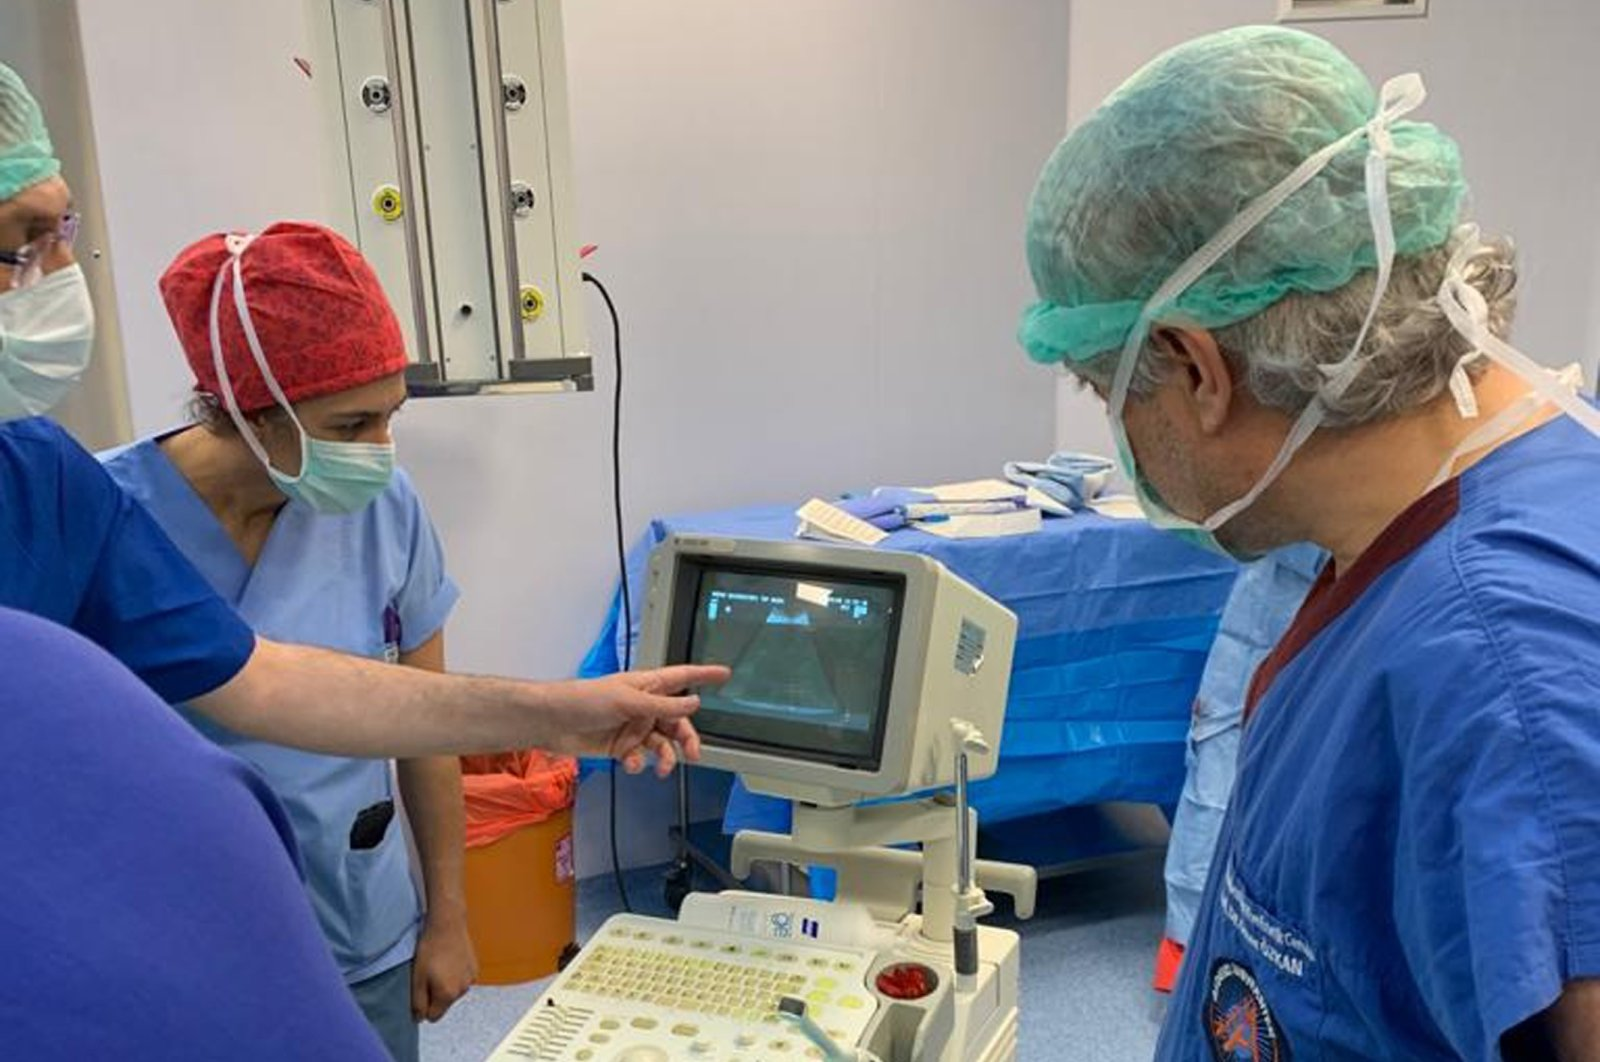 A group of doctors, including Prof. Ömer Özkan (R), make last checks as Derya Sert gives birth, June 26, 2020. (DHA Photo)